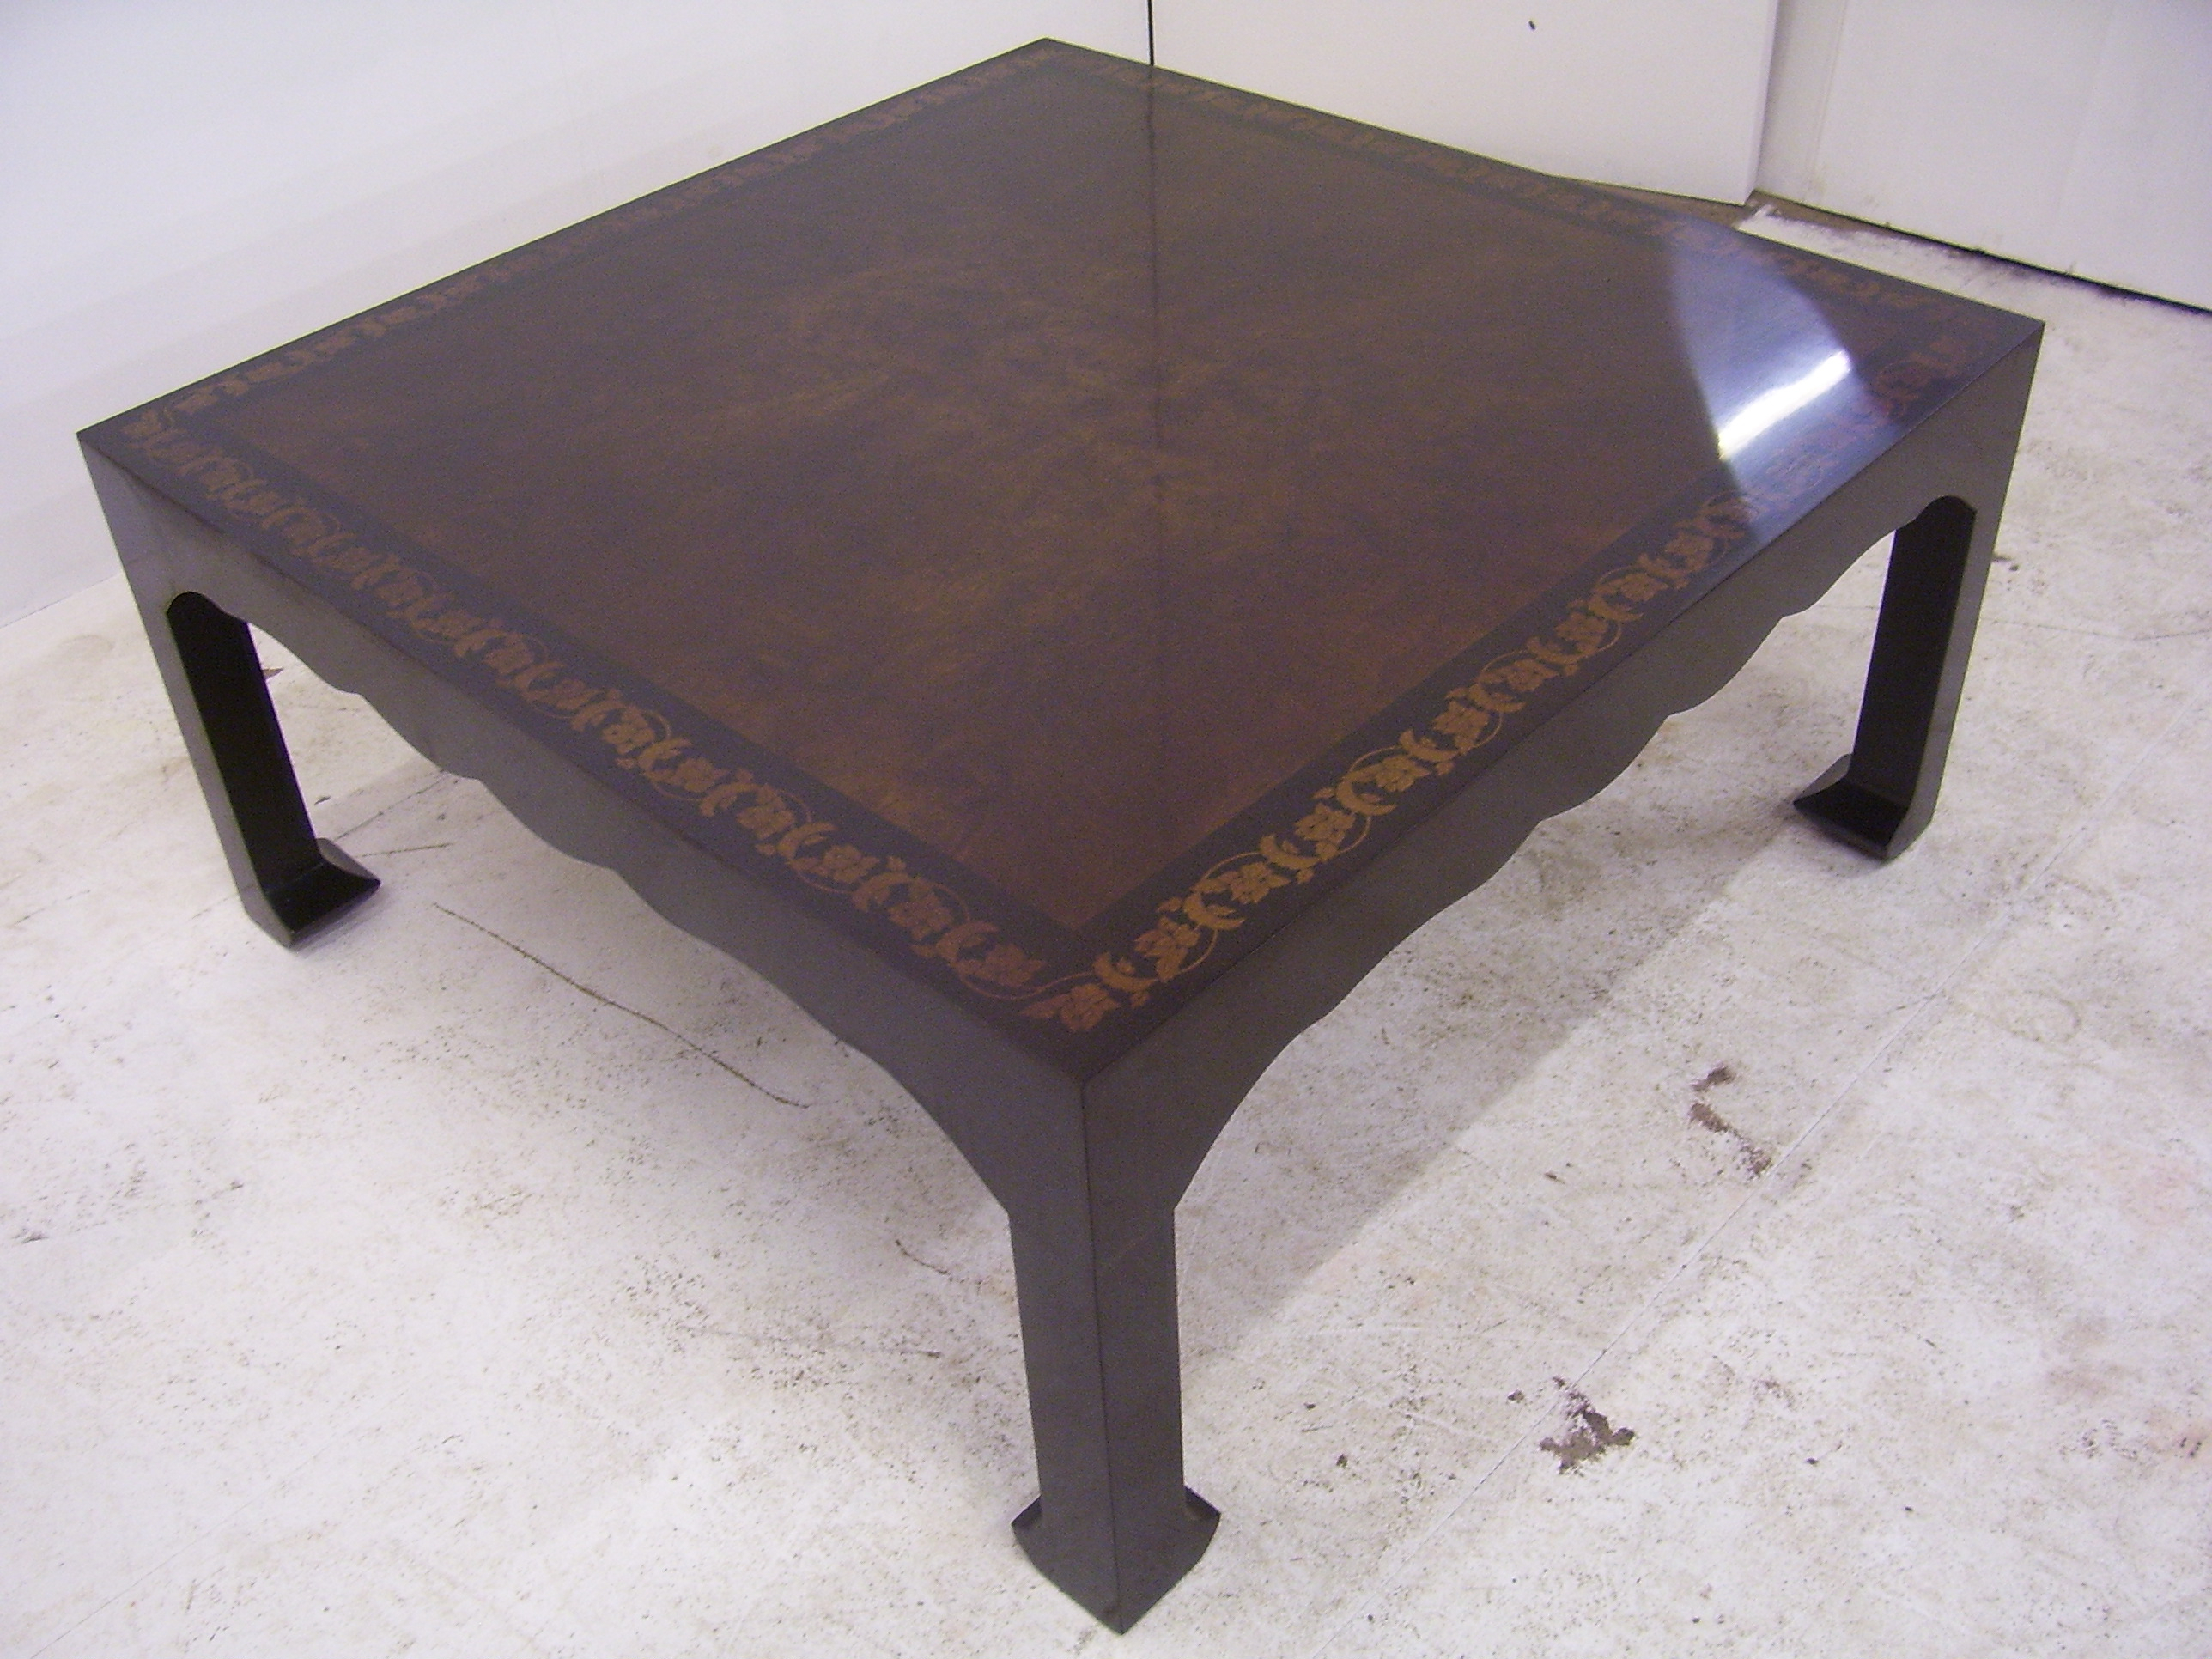 Donnell Coffee Tables Regarding Favorite Product List (View 16 of 20)